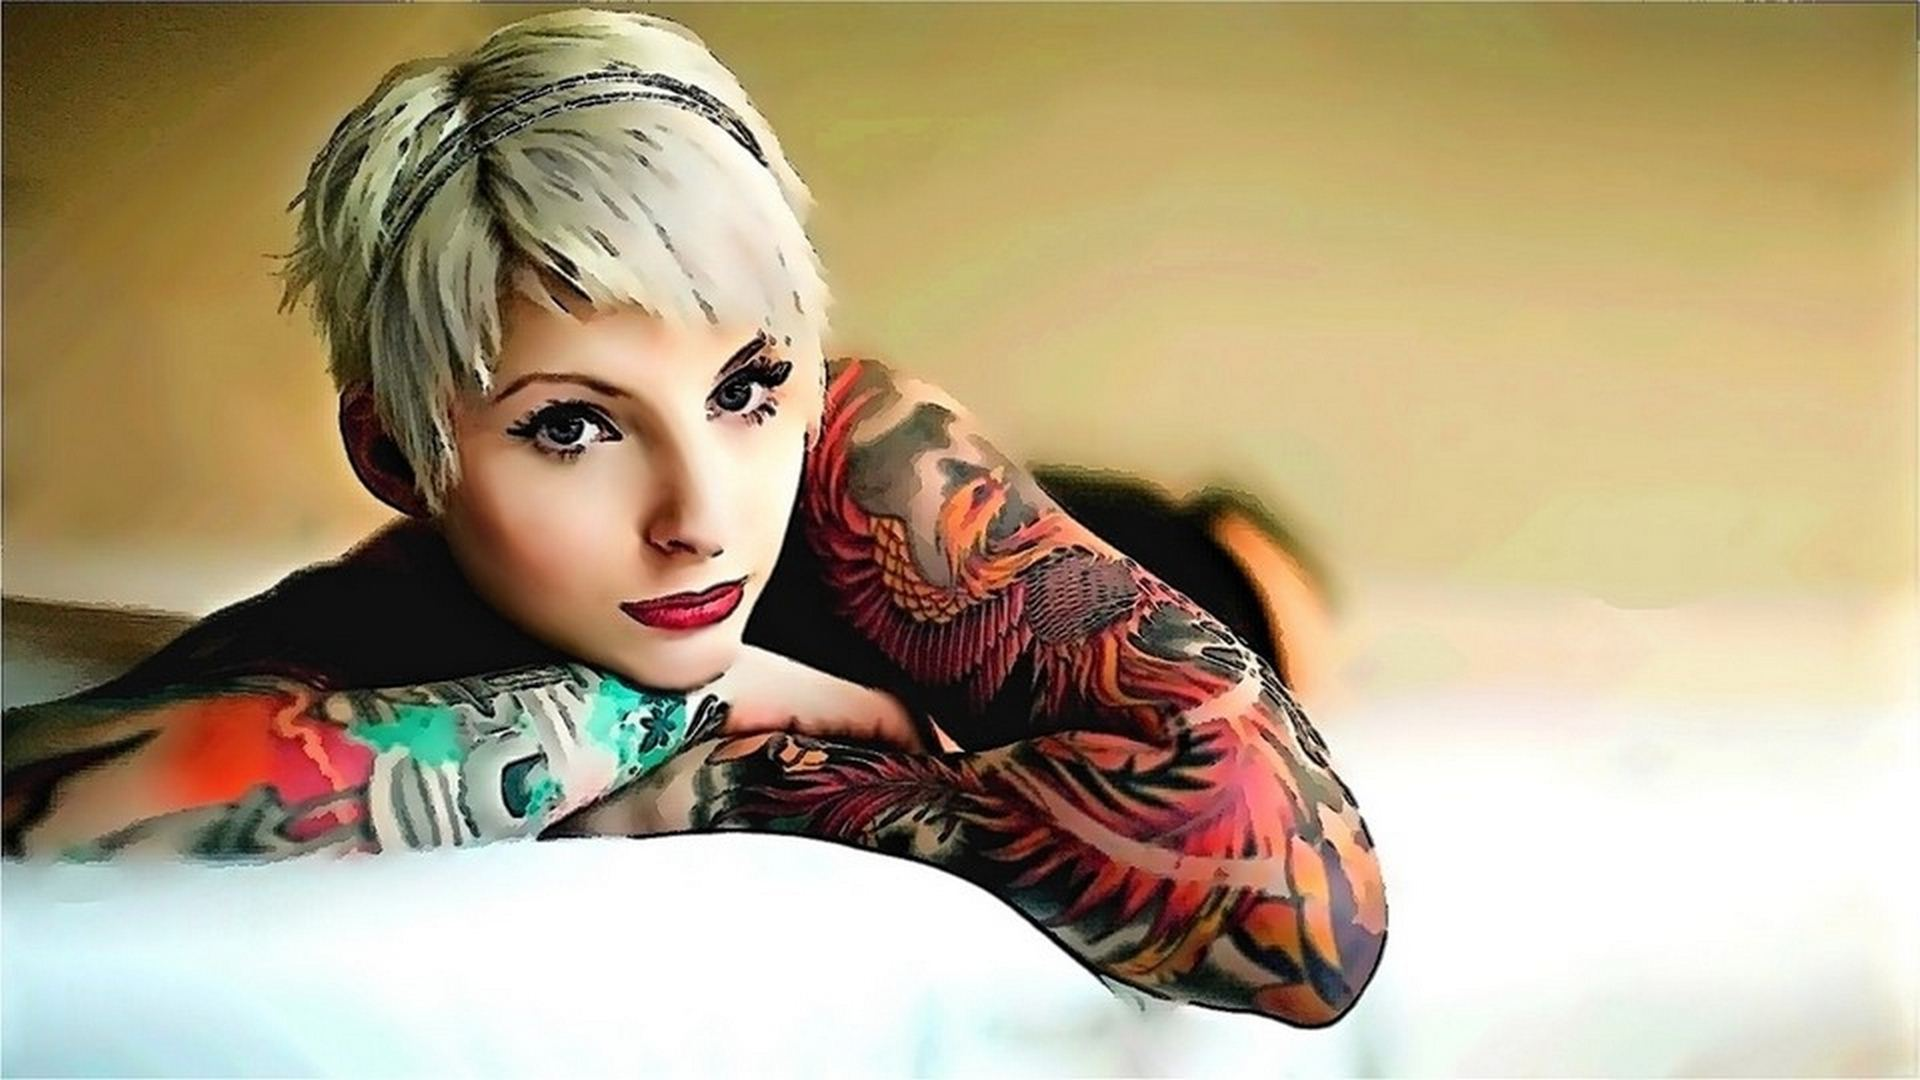 Tattooed girls wallpapers sf wallpaper tattoo girl wallpapers high quality download free voltagebd Gallery